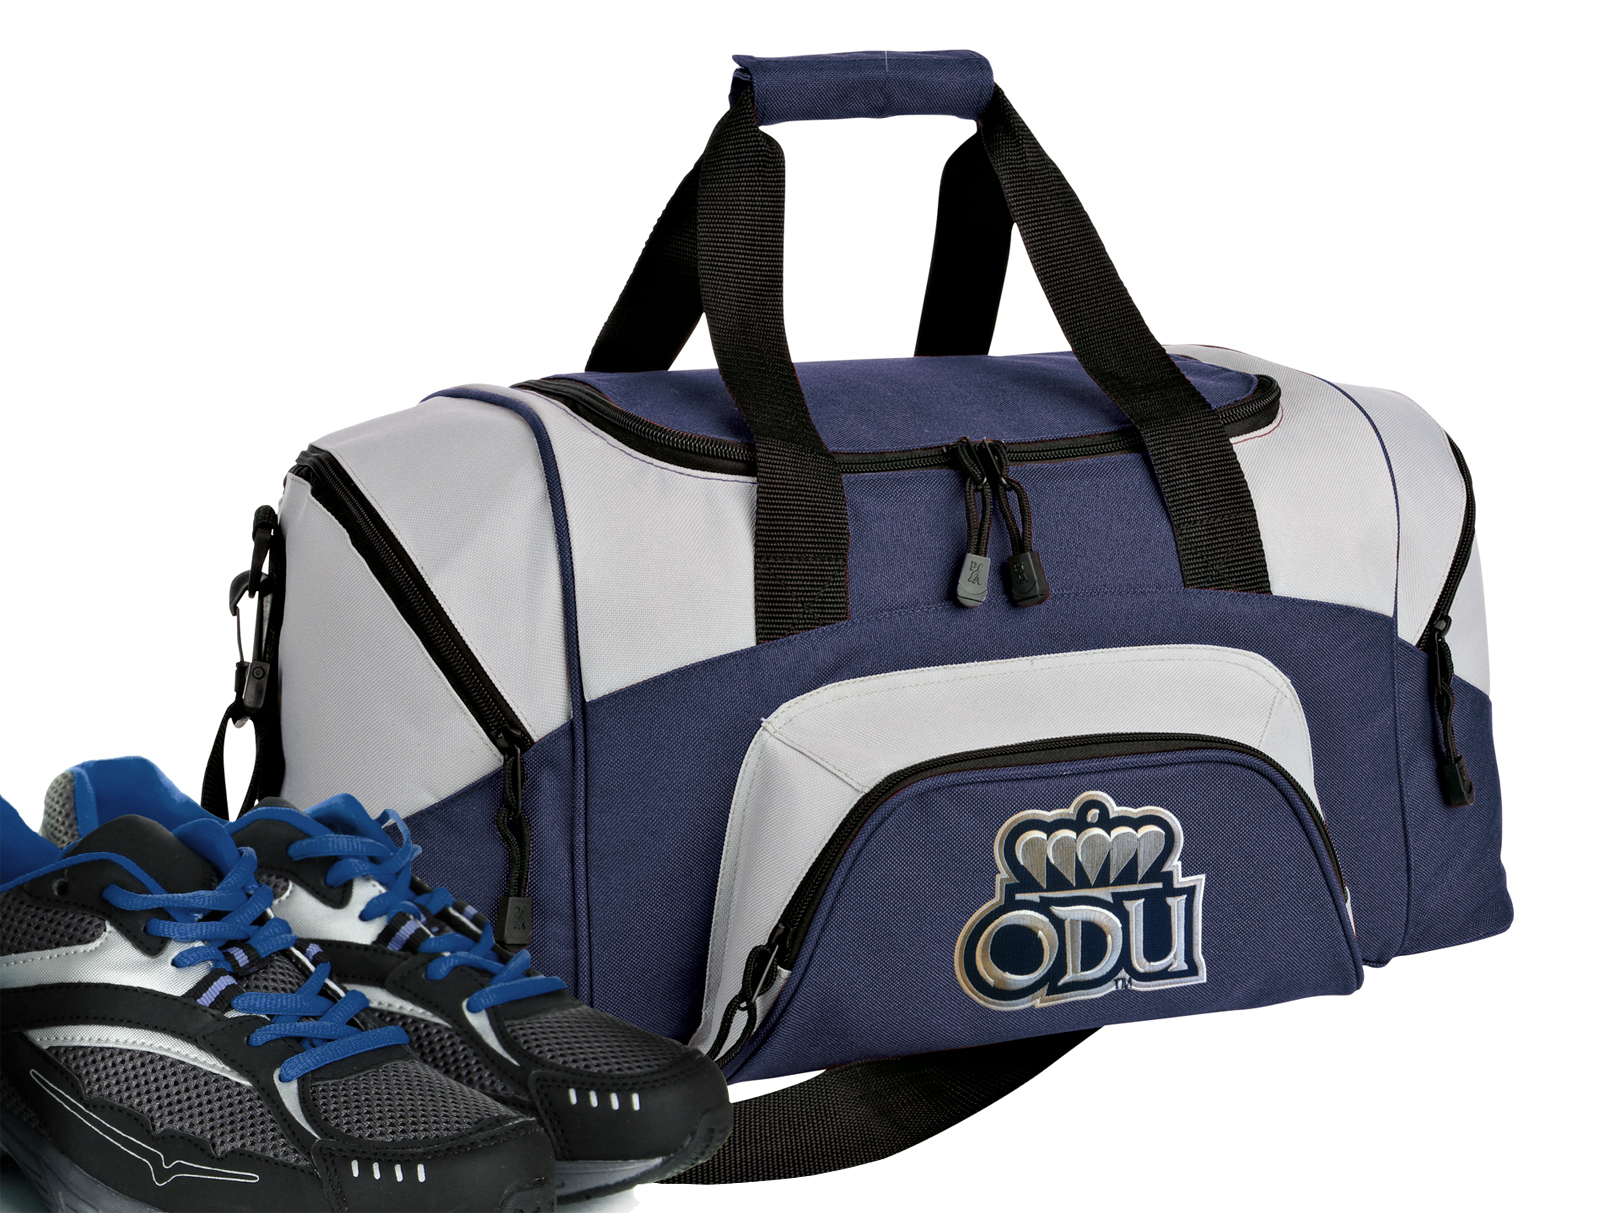 Small ODU Duffle Bag or Small ODU Old Dominion Gym Bags by